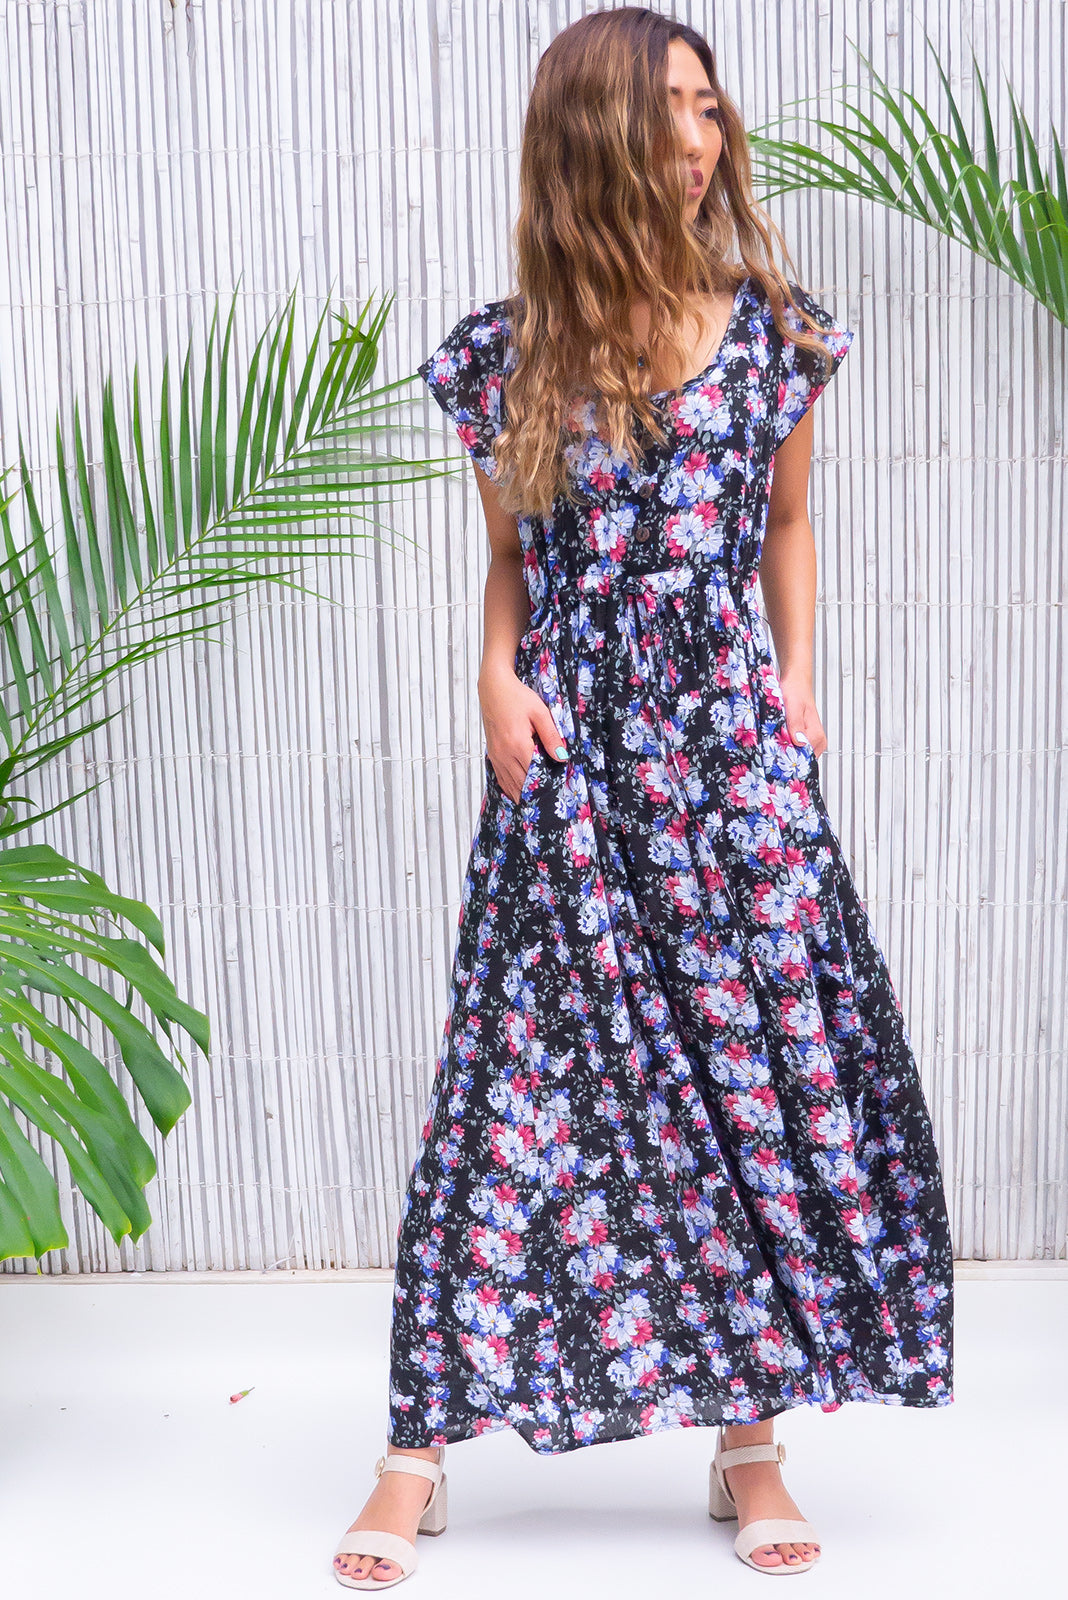 Juniper Trellis Noir Maxi Dress is a fabulous day maxi frock featuring functional button down detailing to waistline, cap sleeves, side pockets, adjustable drawstring waist, black base with blue, steel blue, mauve and sage green floral print in woven 100% rayon.